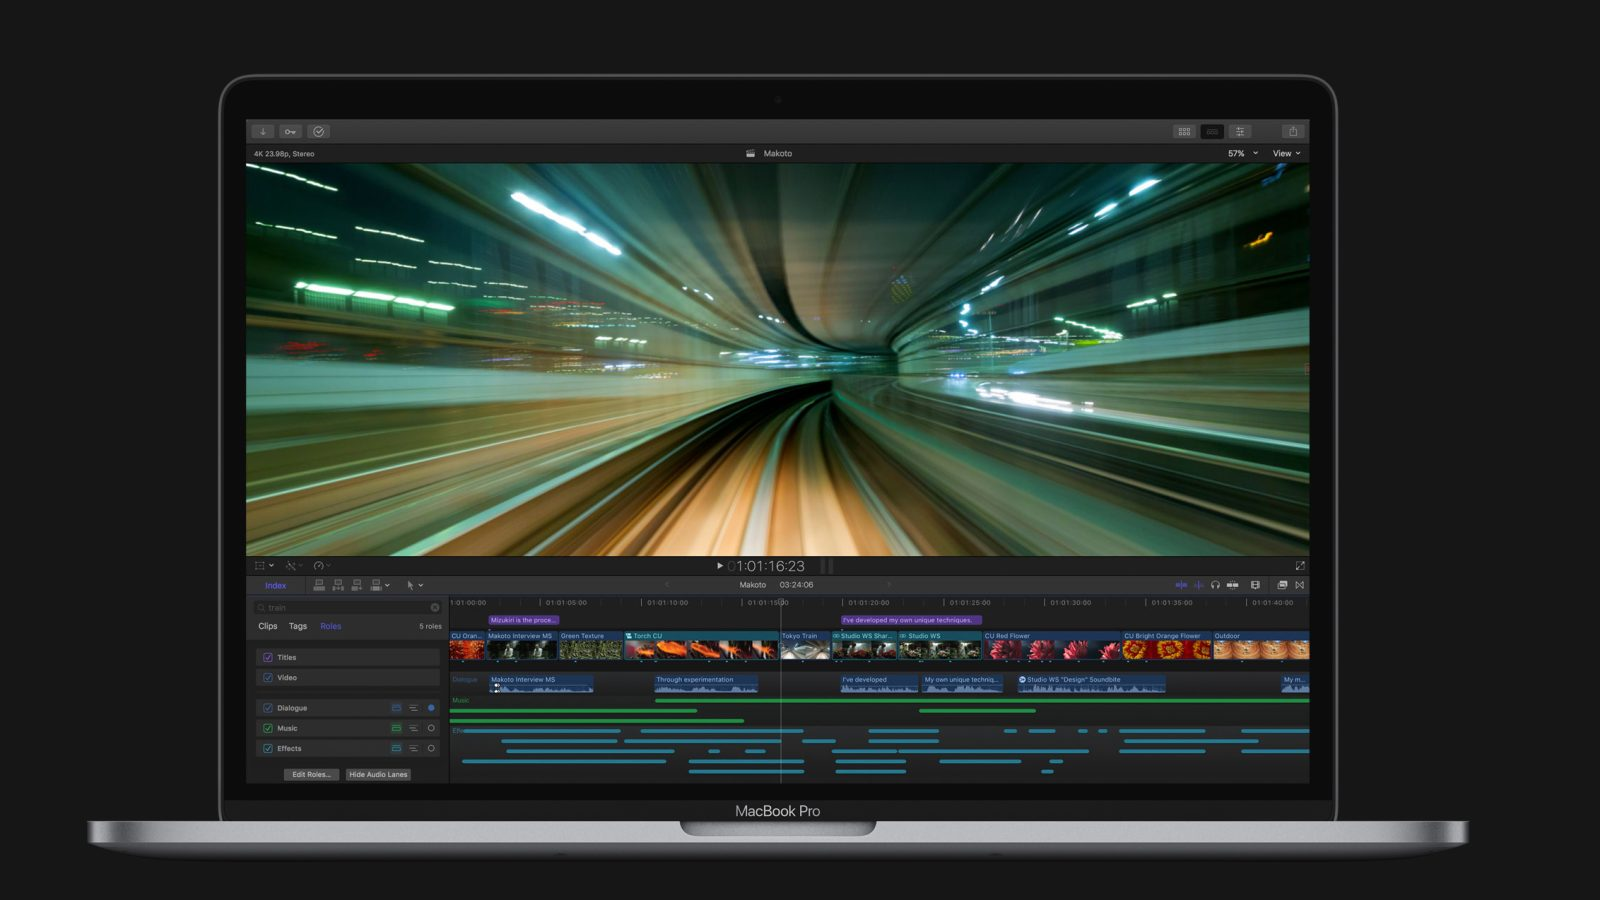 Save up to $400 on the latest 13-inch MacBook Pro